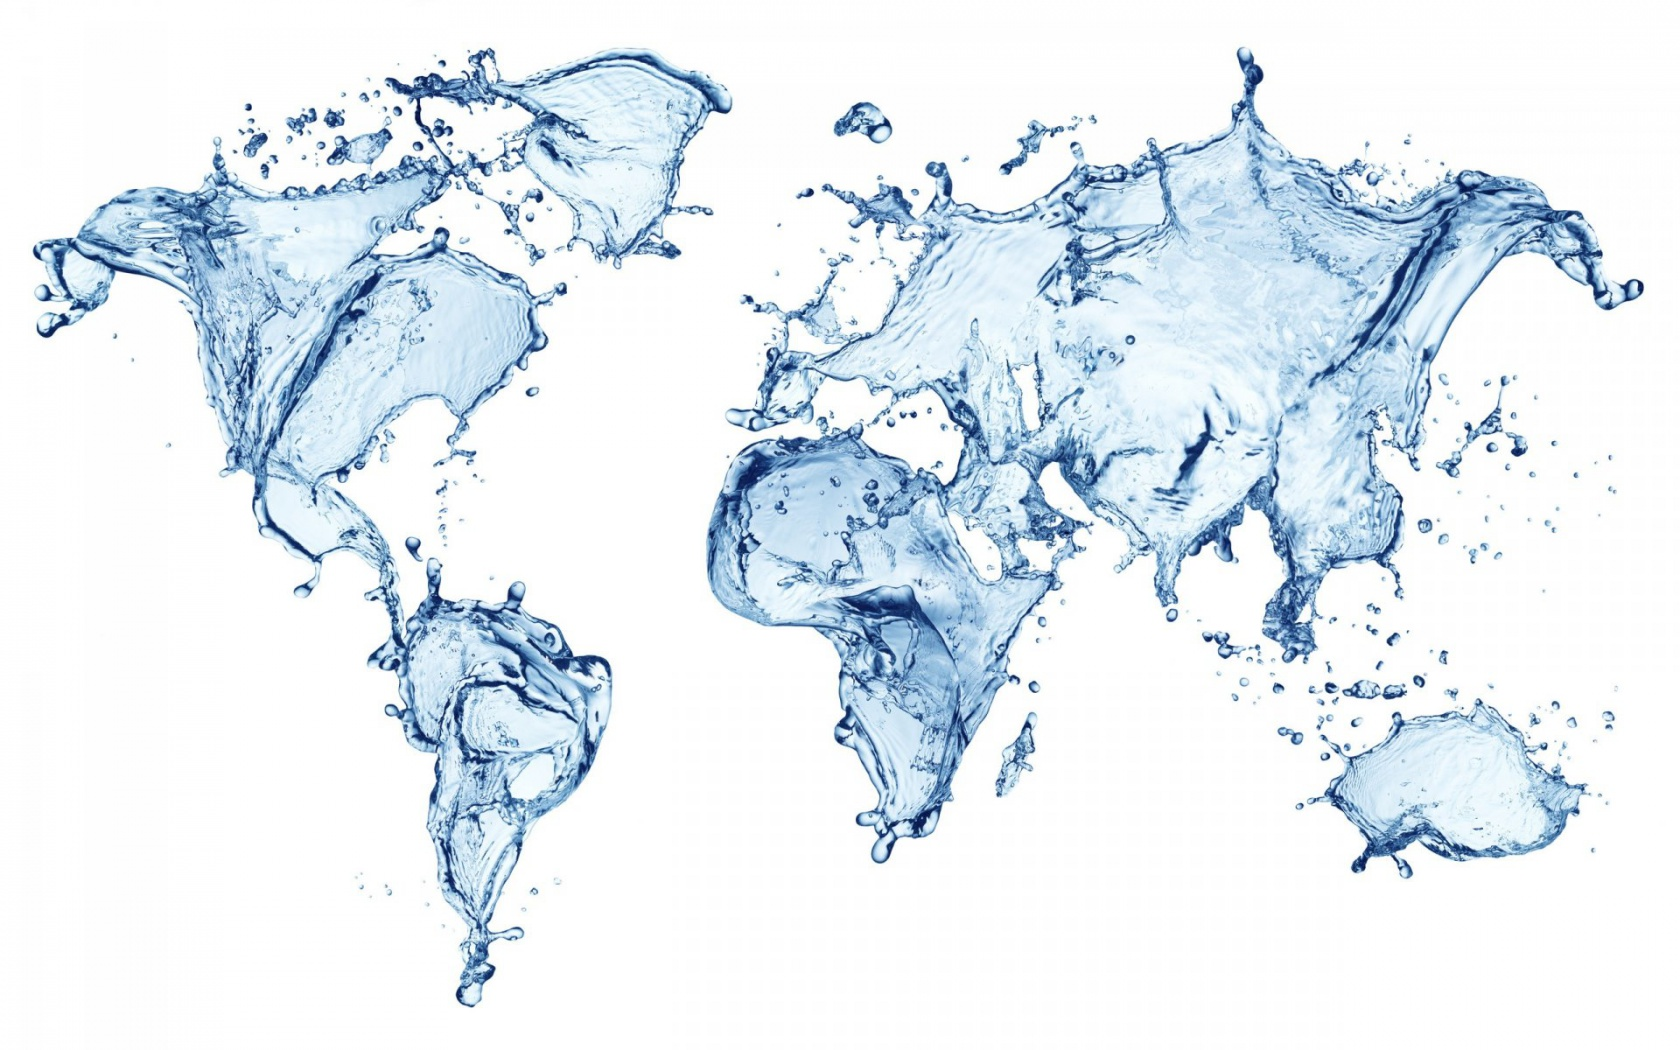 1680x1050 world maps water abstract desktop pc and mac wallpaper gumiabroncs Images